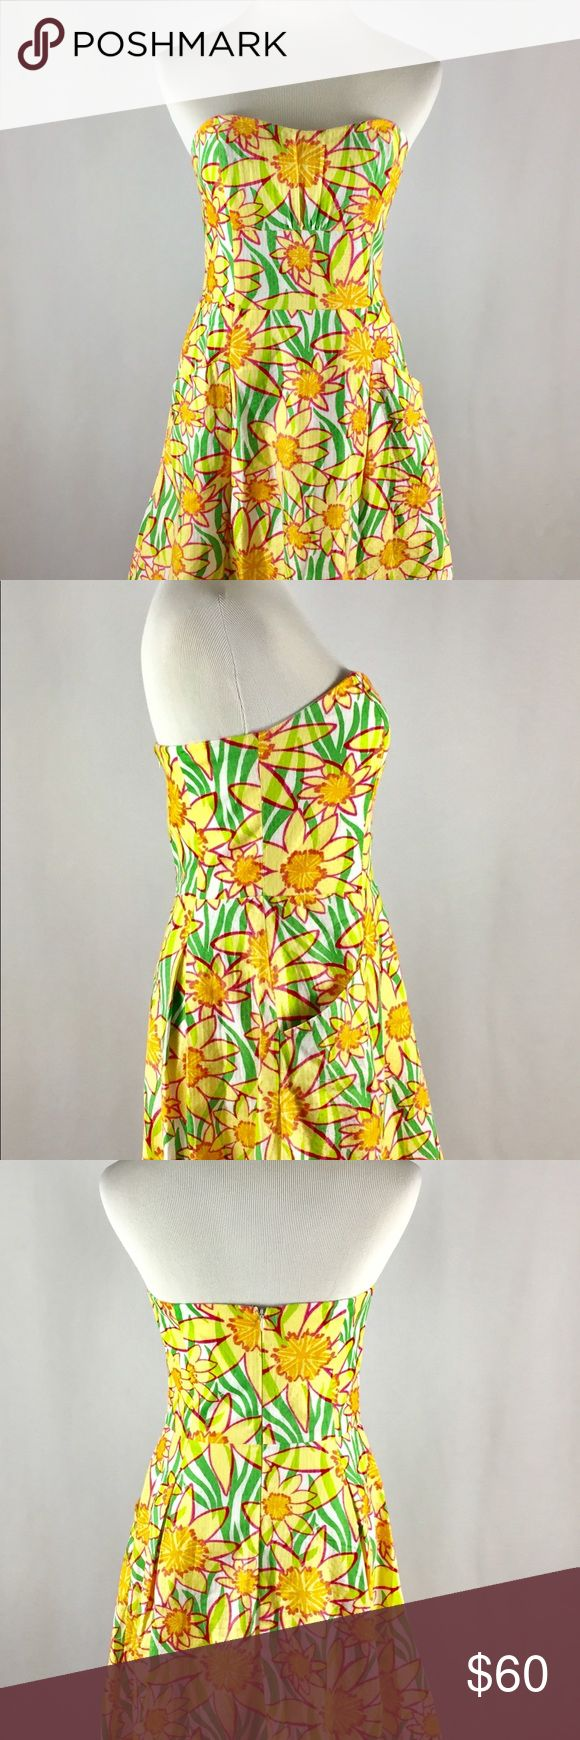 Preowned Lilly Pulitzer Strapless Sundress Size 6 GUC Yellow Green Pink Strapless Sundress. Gently worn shows minor snags as seen in photos. Lilly Pulitzer Dresses Strapless